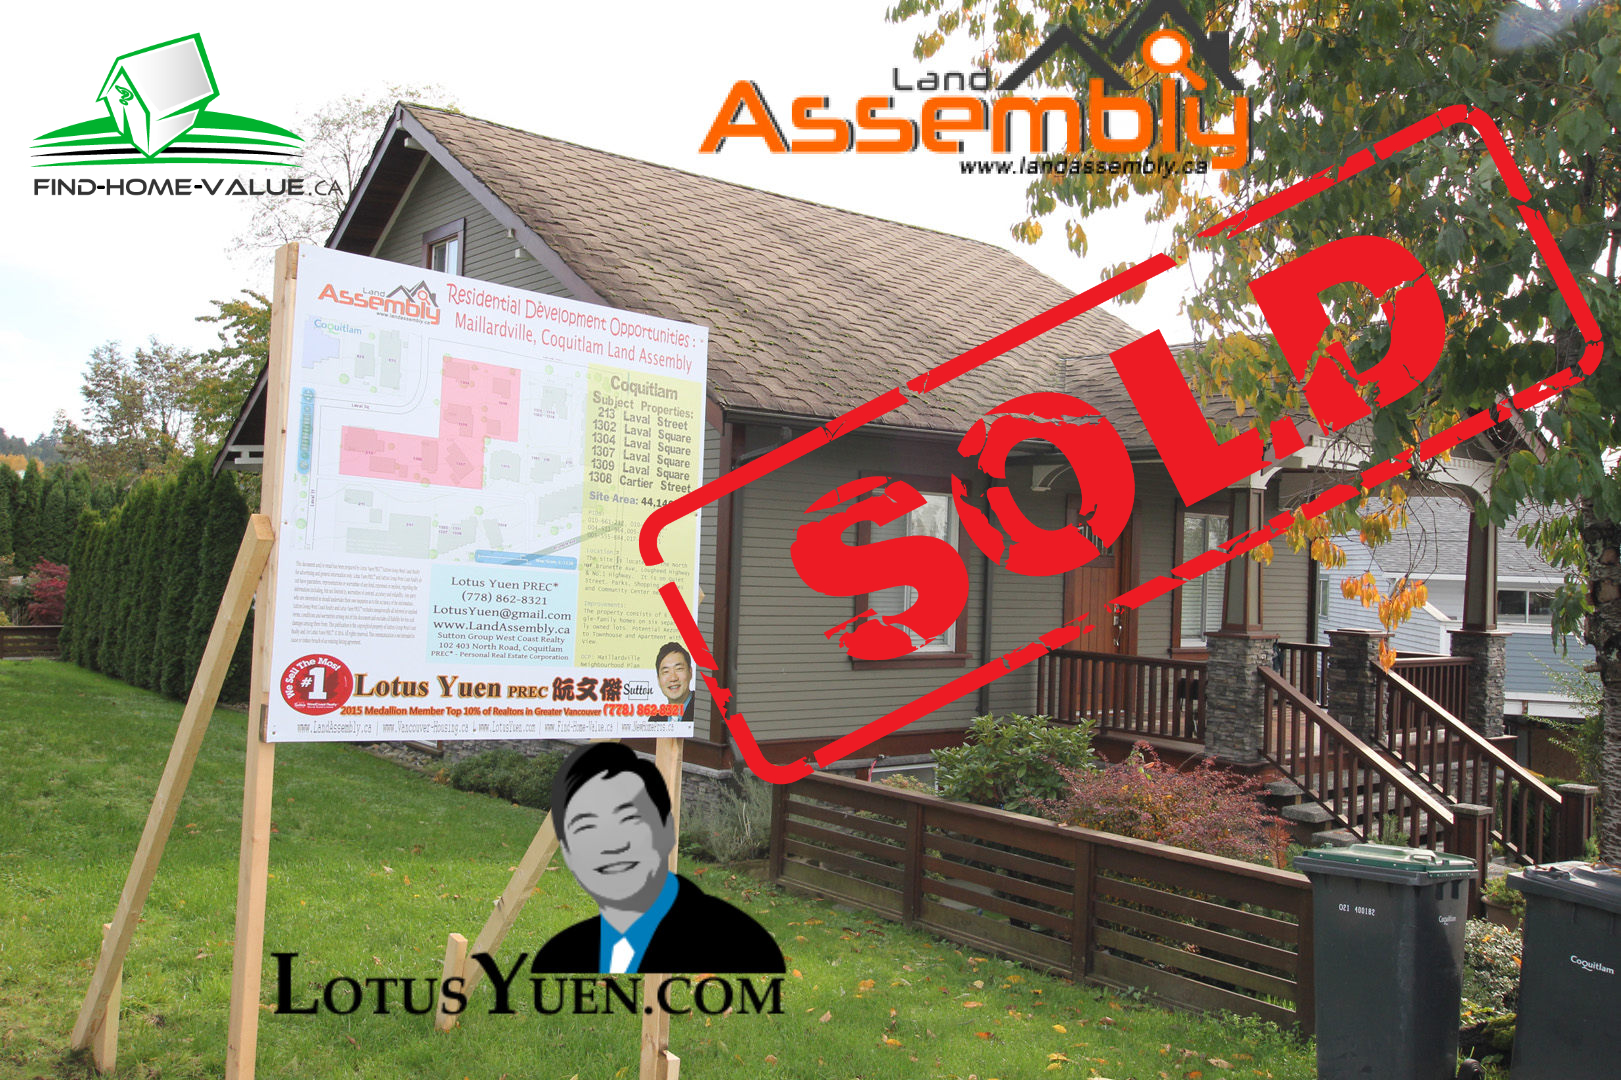 Coquitlam Land Assembly Real Estate Agent